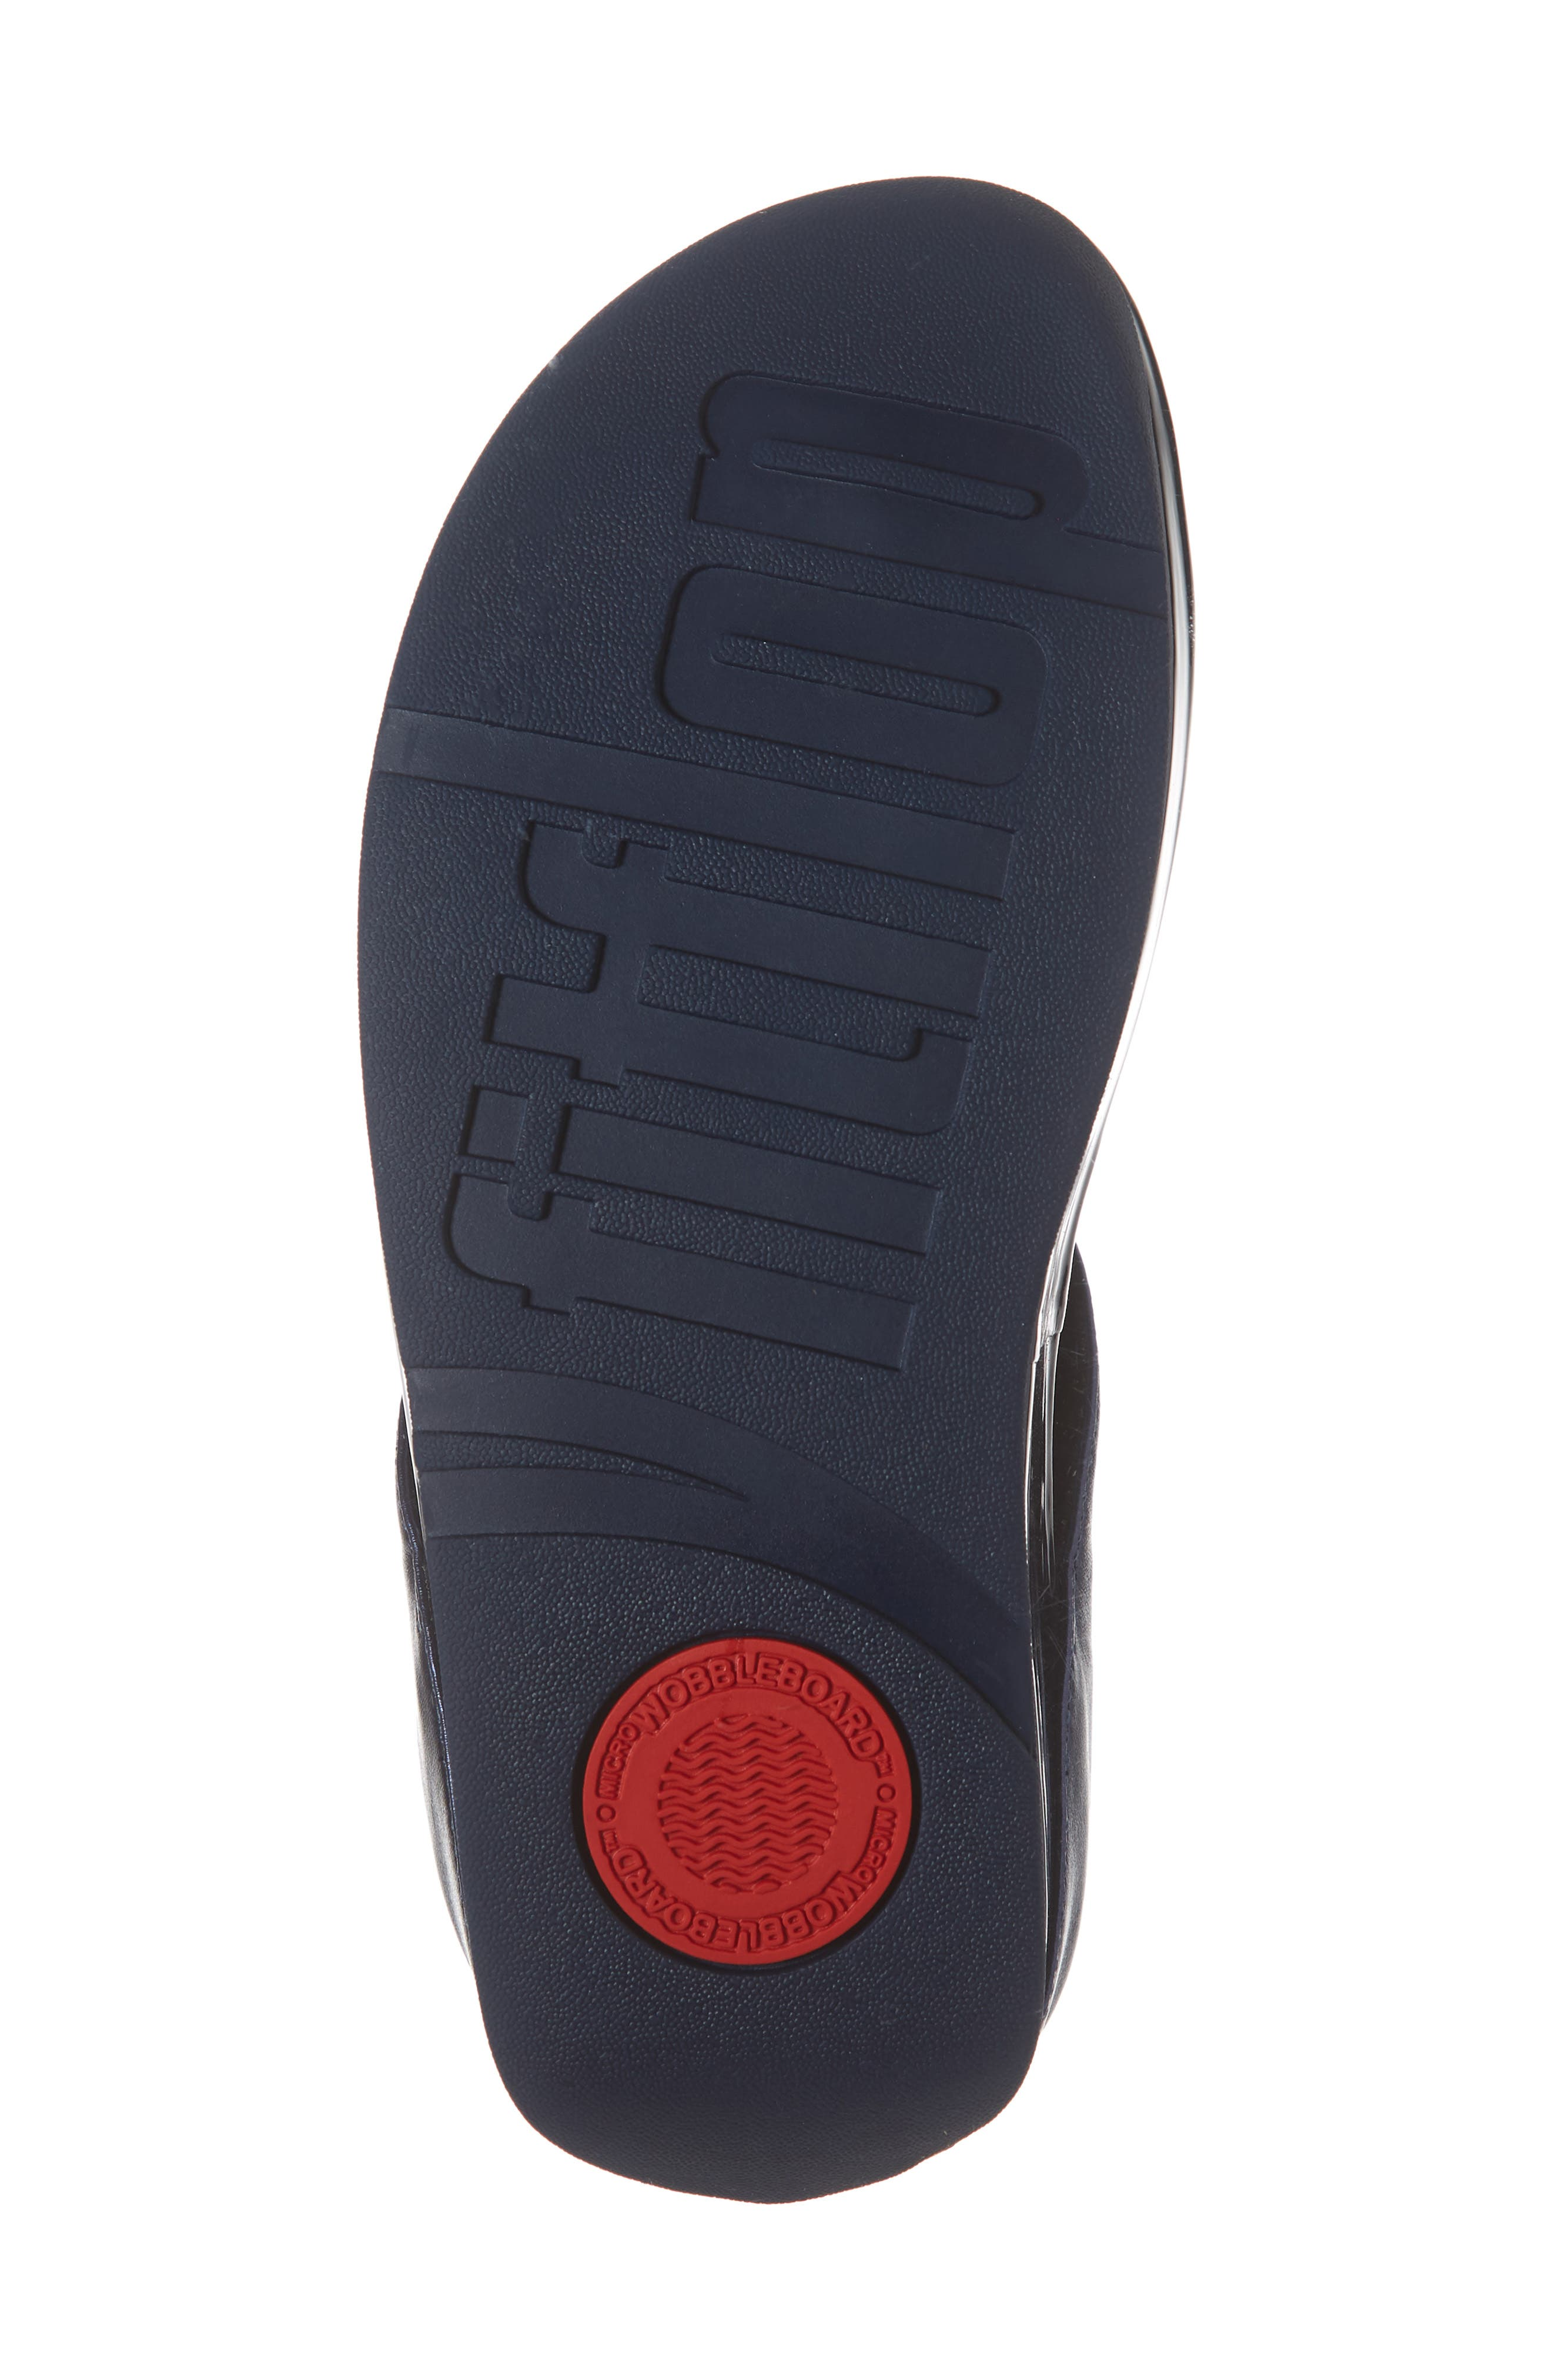 Rumba Flip Flop,                             Alternate thumbnail 6, color,                             METEOR BLUE LEATHER